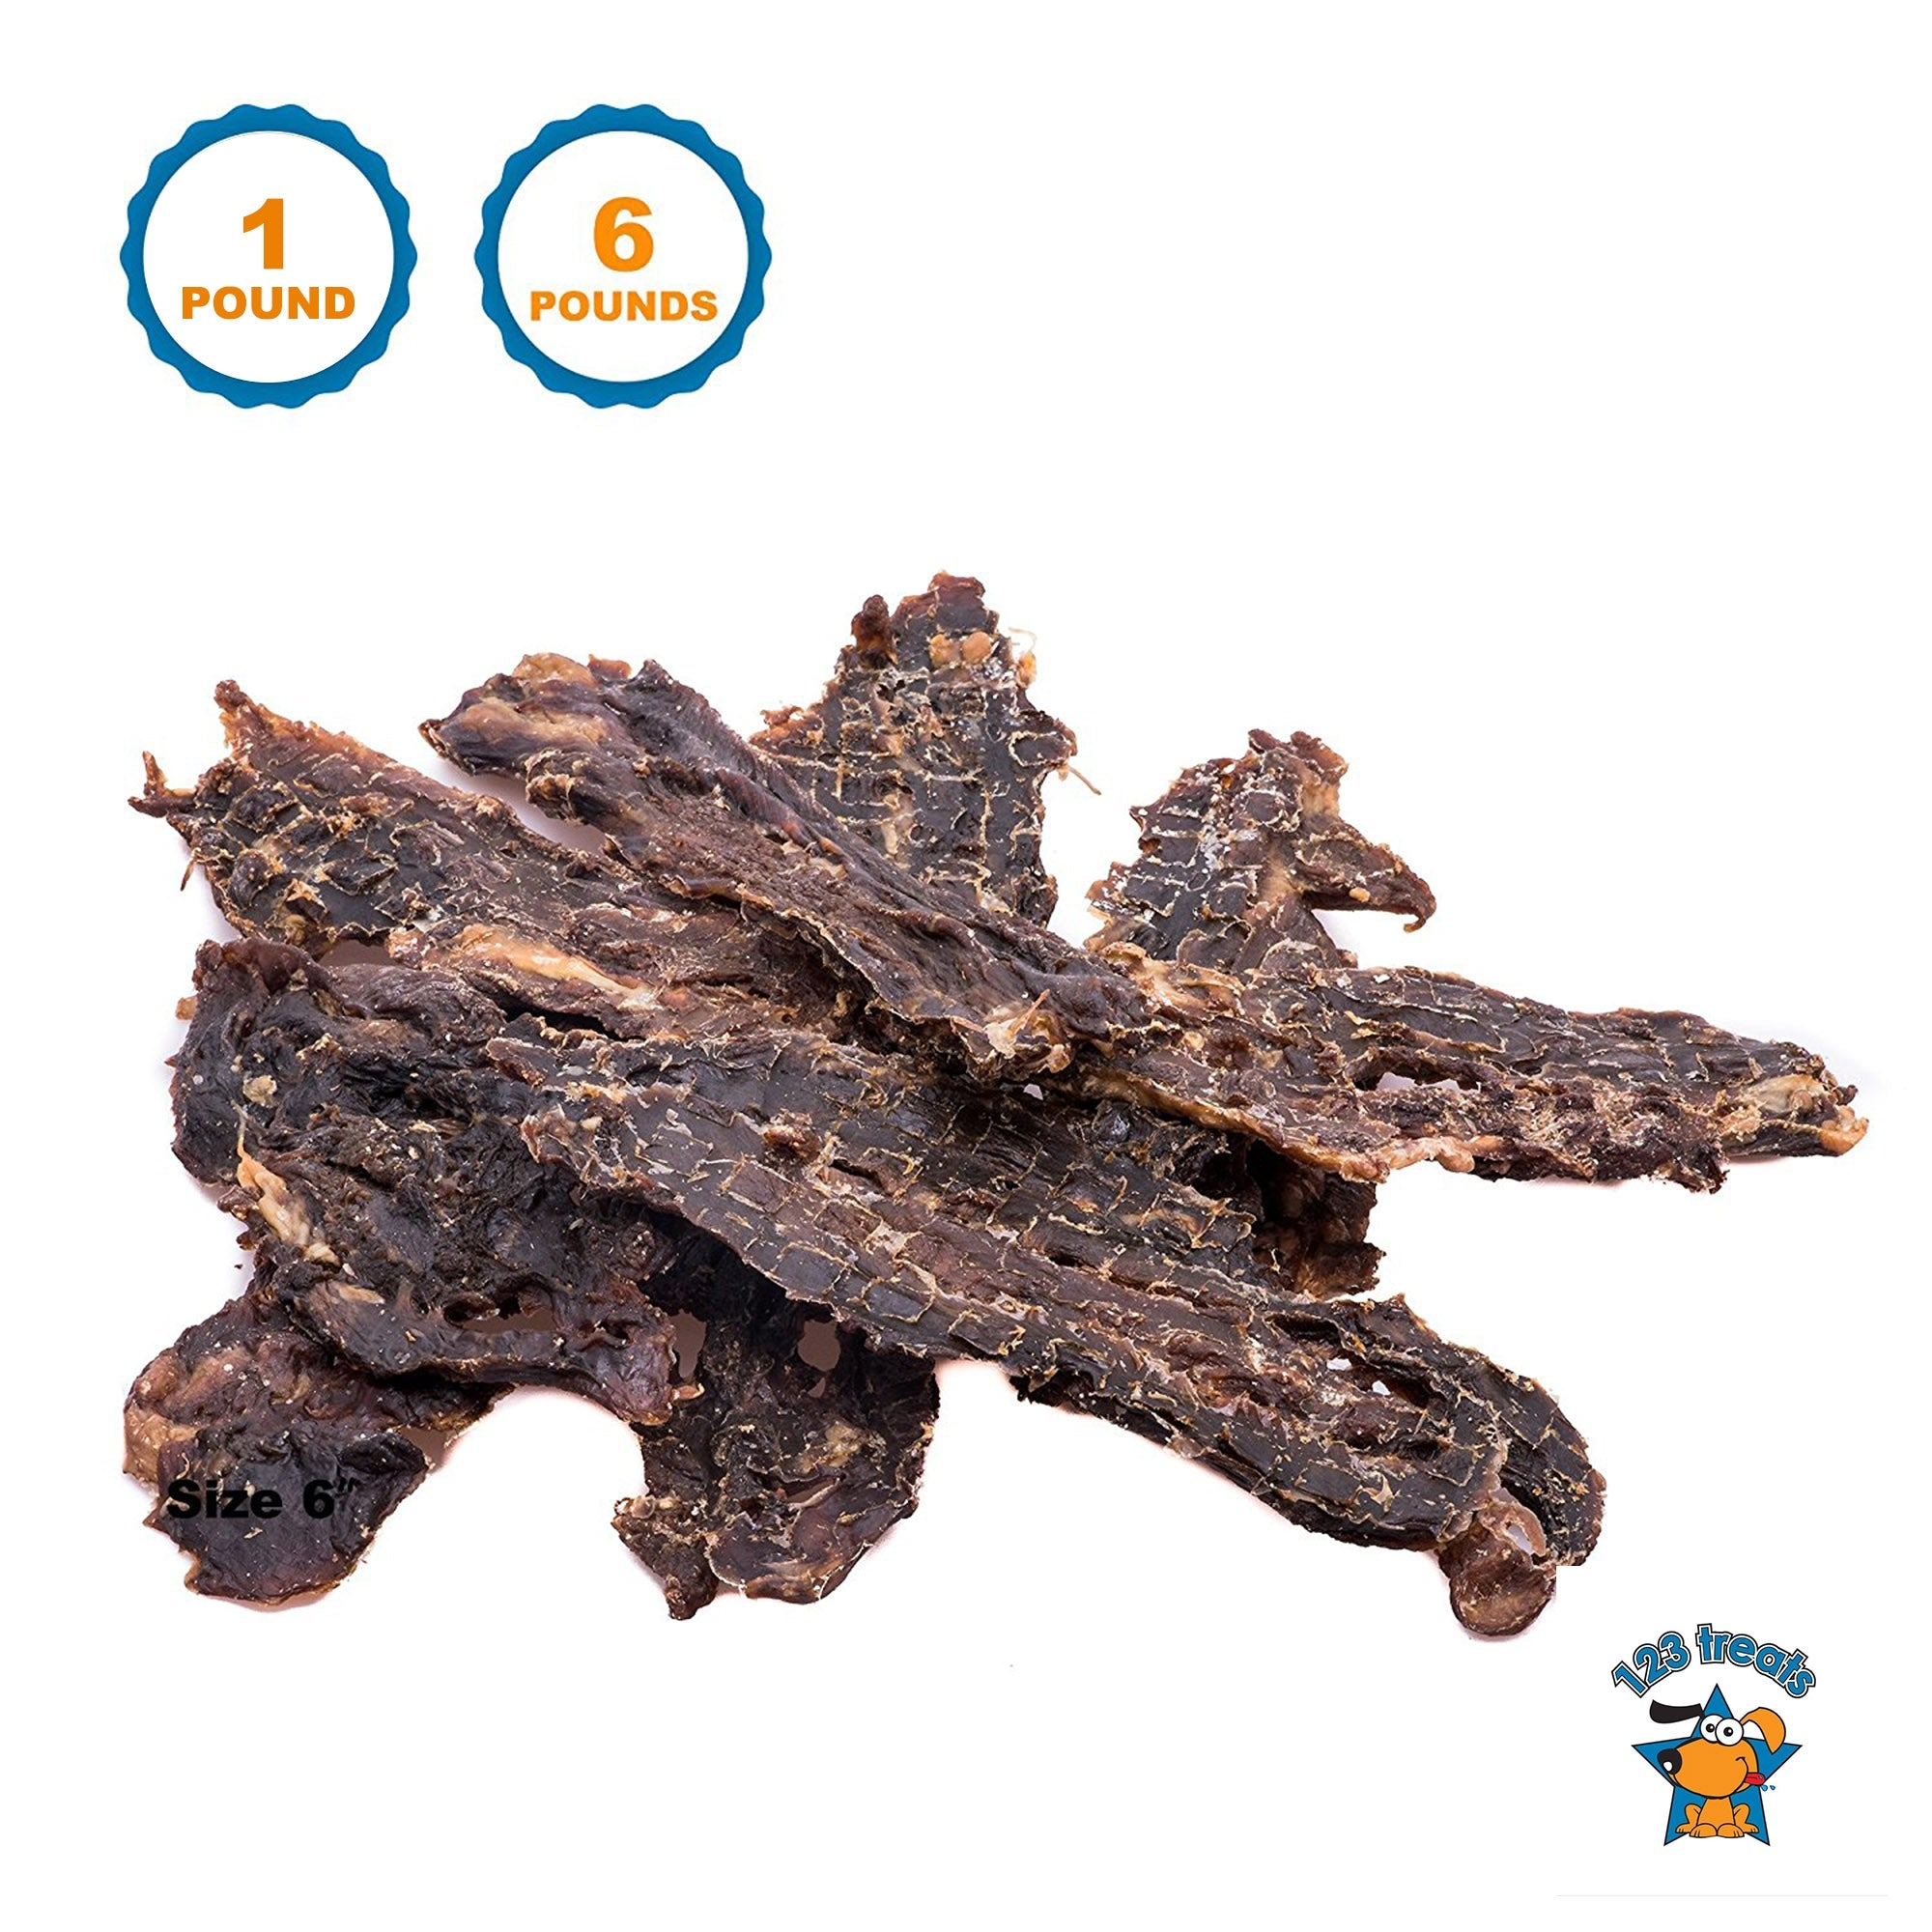 1 or 6 Pounds - Beef Jerky Treats For Dogs - 100% Real Meat dog Treats by 123 Treats